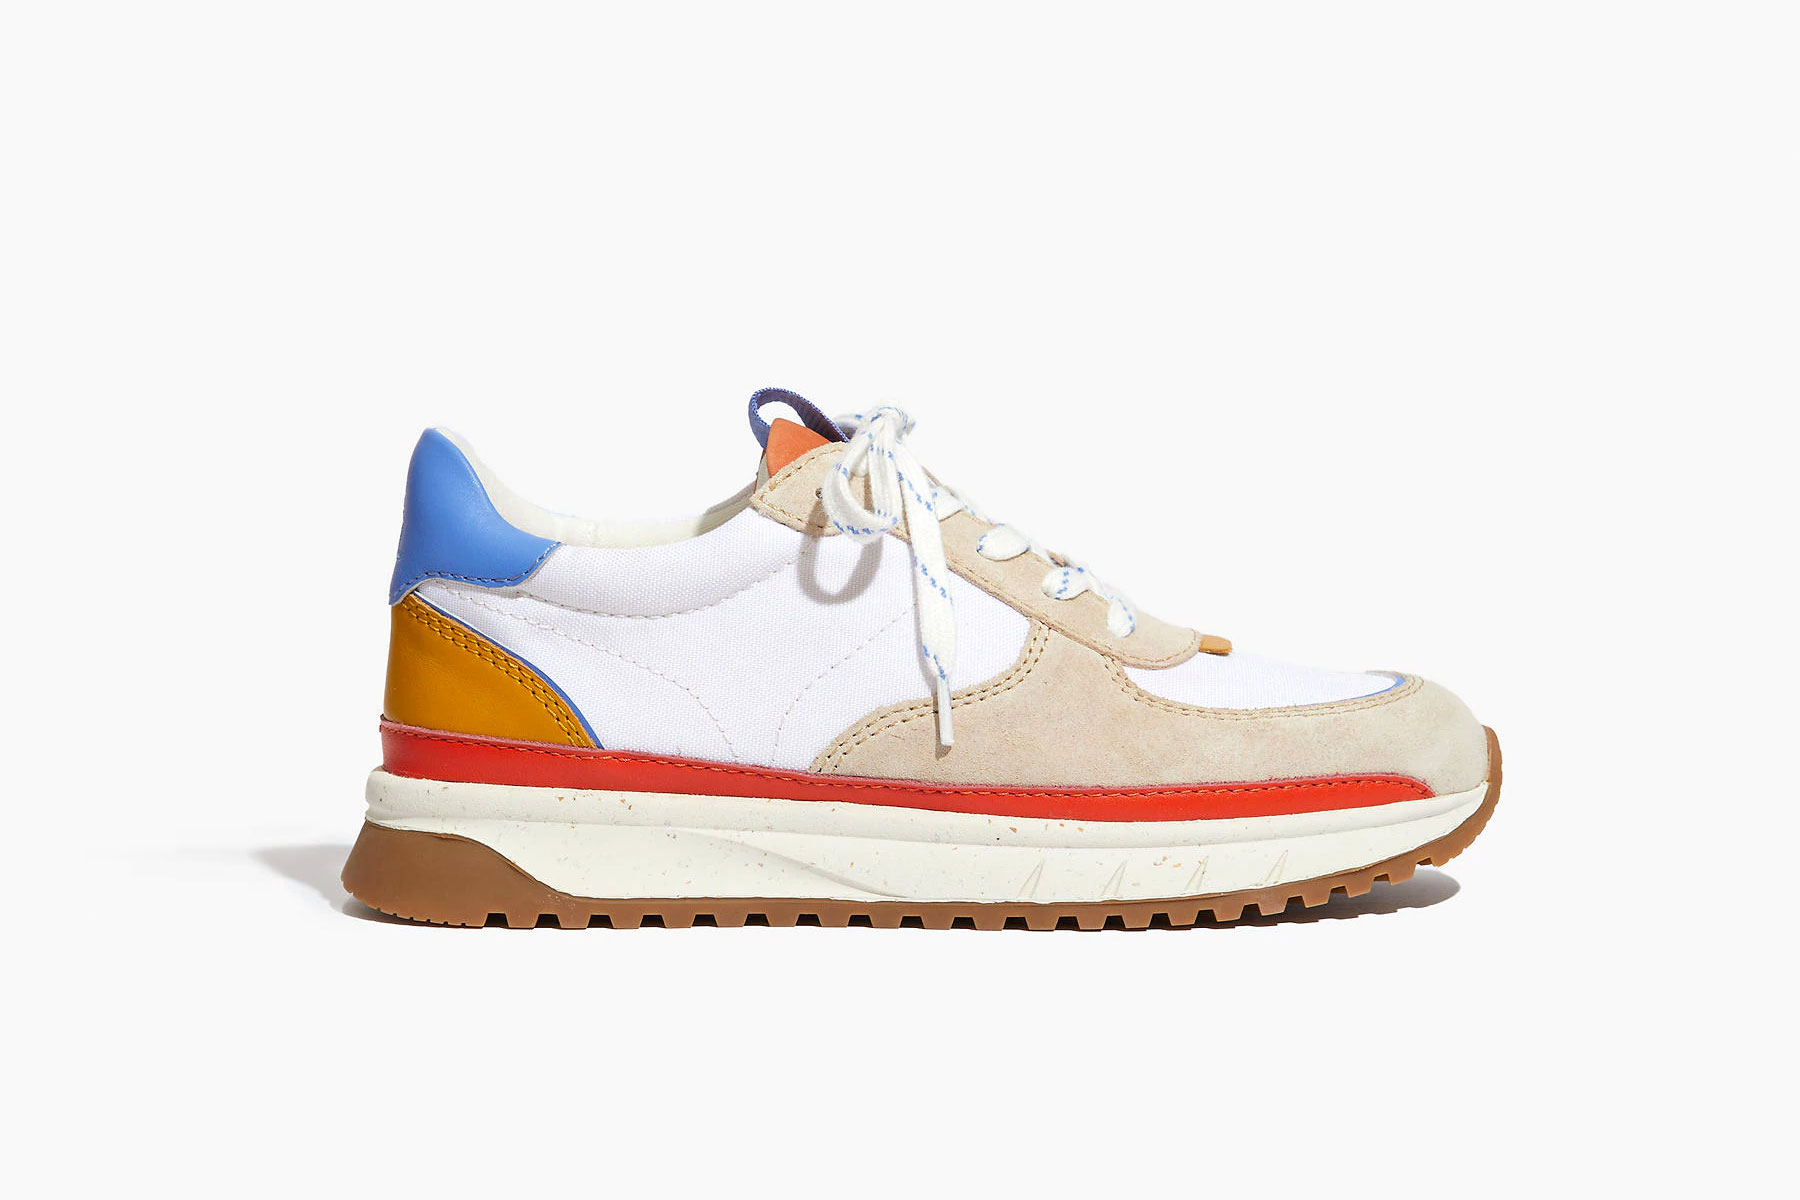 White, tan, blue, and red sneakers